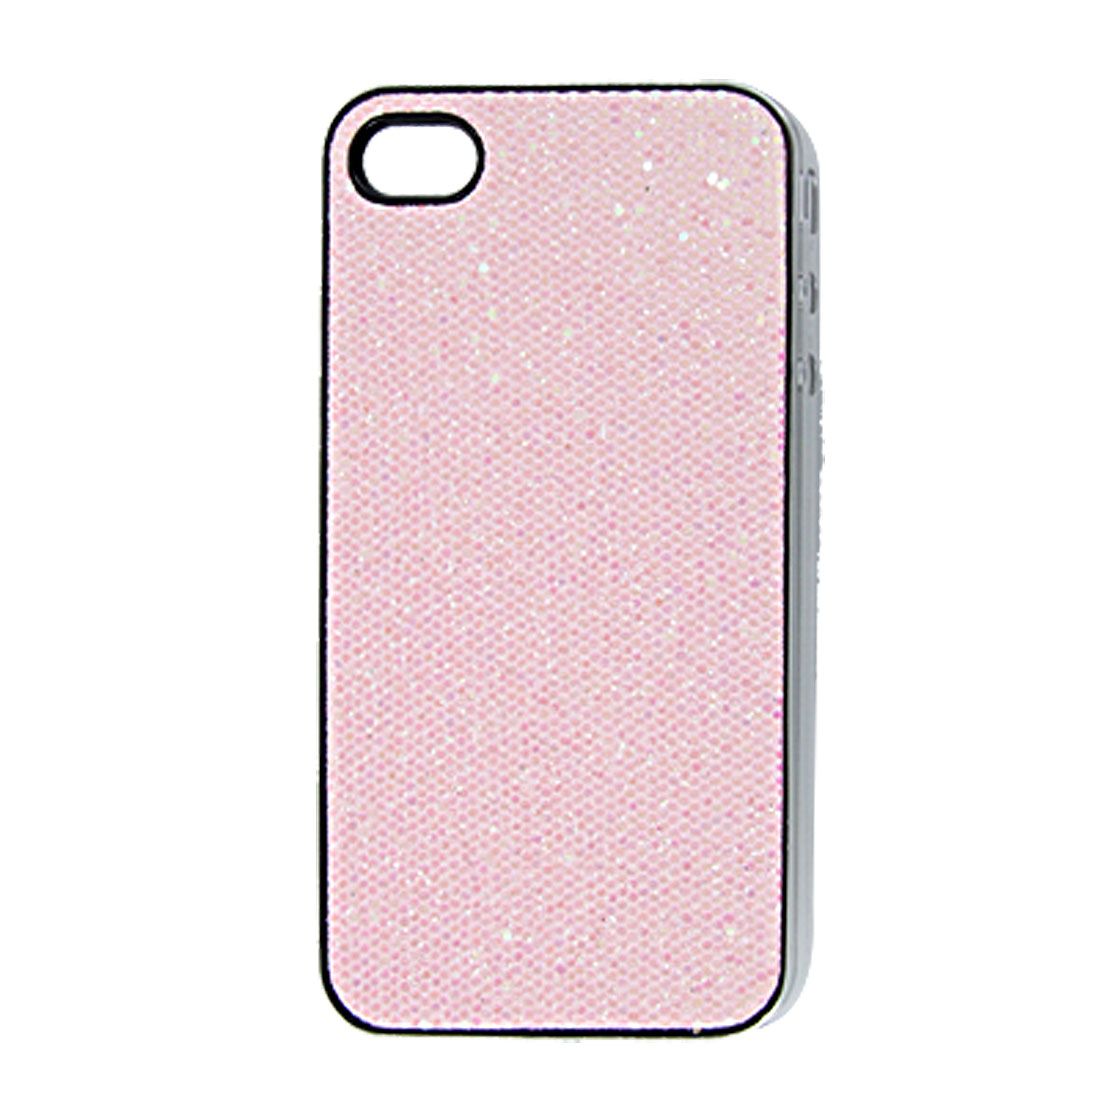 Protective Sequin Peachpuff Plastic Back Cover Case for iPhone 4 4G